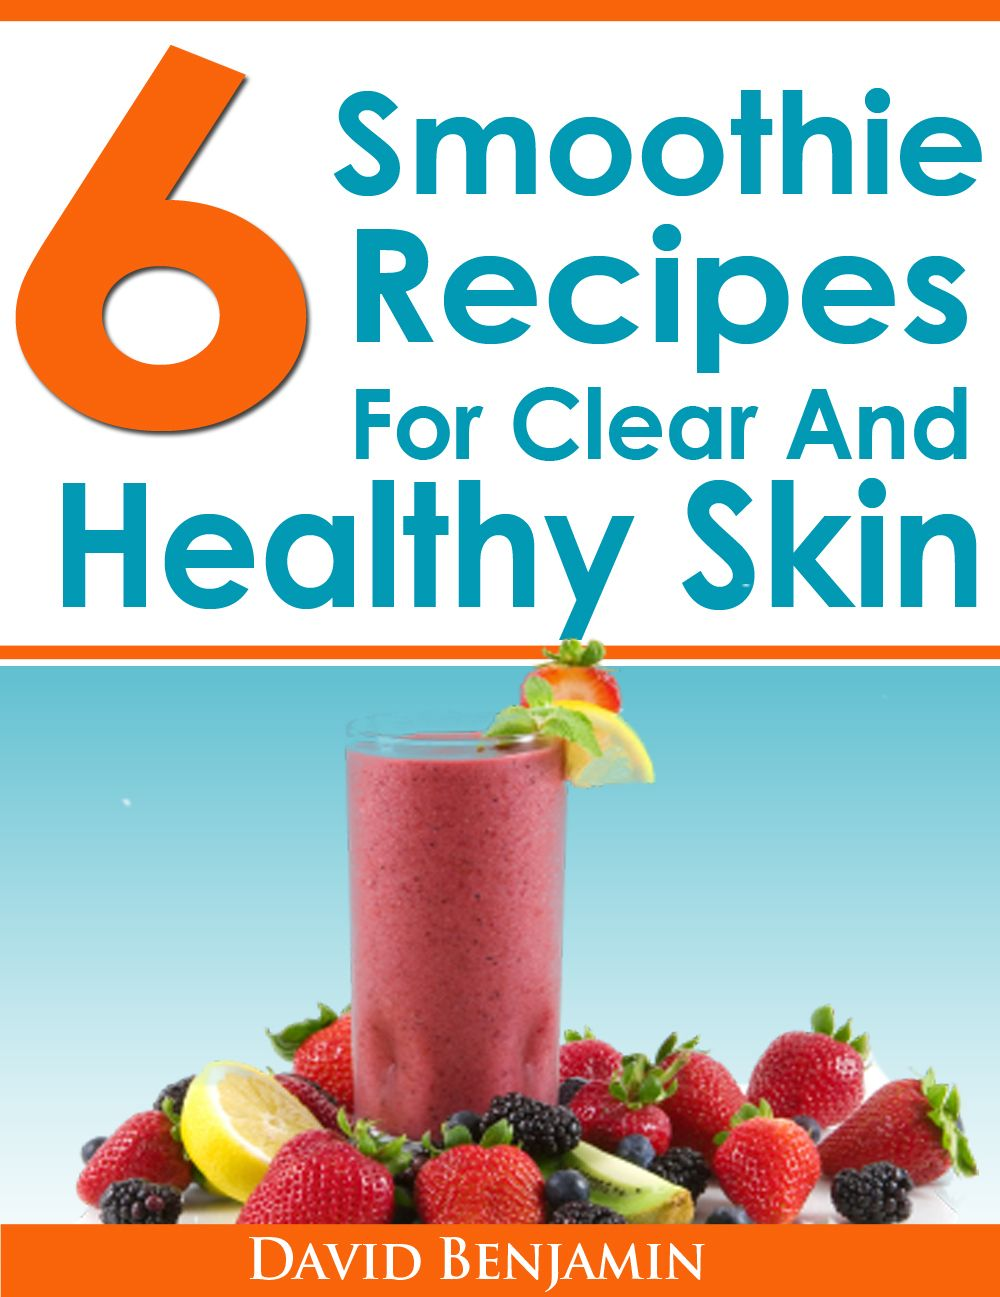 6 Smoothie Recipes For Clear And Healthy Skin